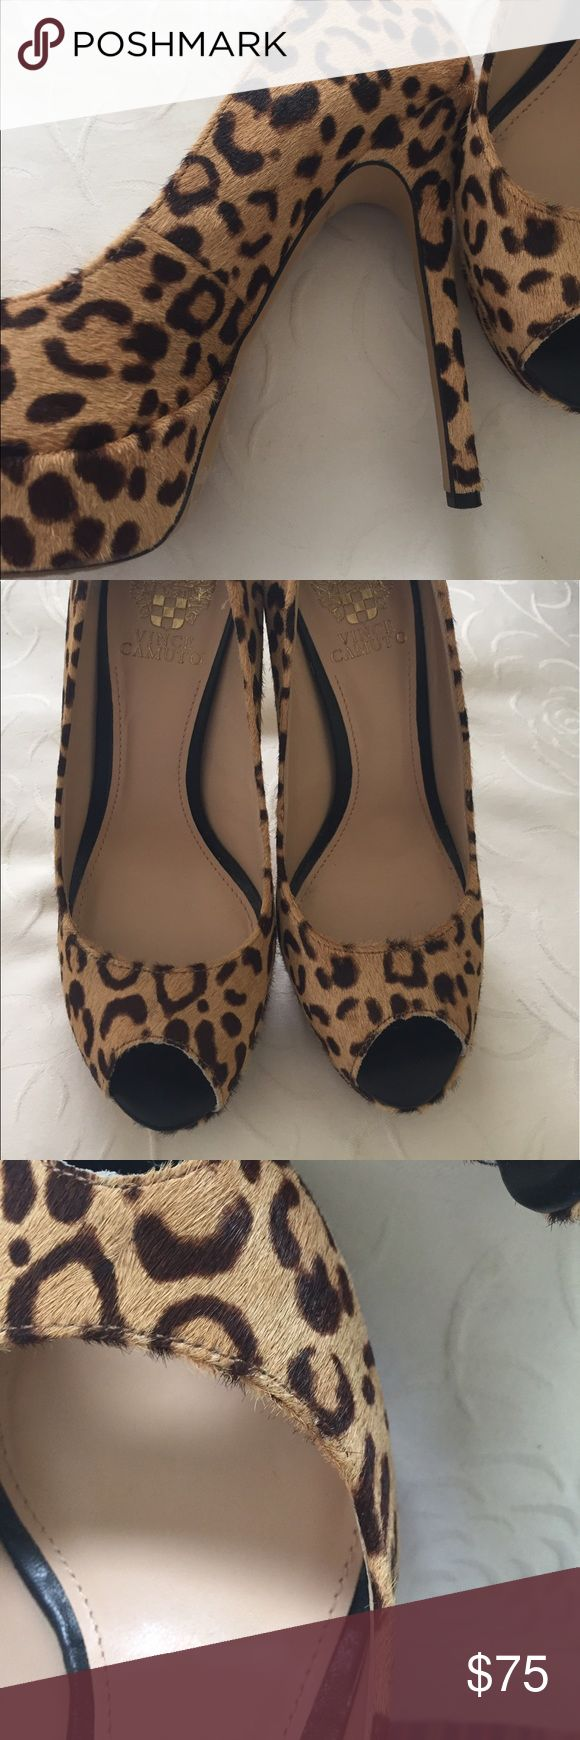 """VC Leopard print cow hair peep toe platform Like new pumps worn once dyed cow hair very nice!  Almost 5"""" heel with 1"""" platform toe. Vince Camuto Shoes Platforms"""